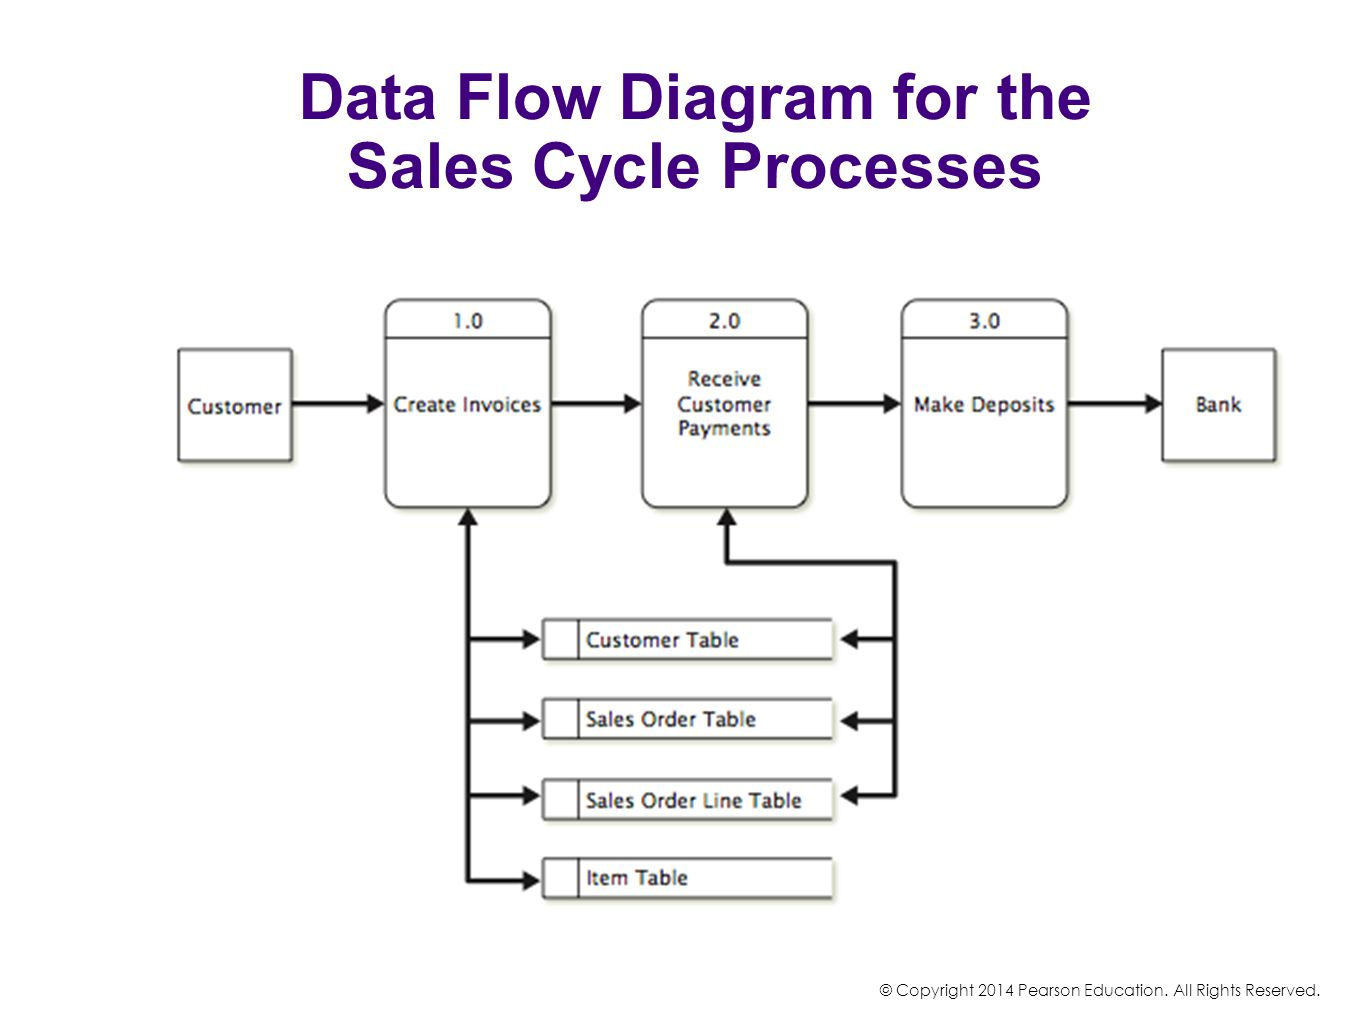 Accounting Systems Business Processes Chapter 4 Ppt Video Online Process Flow Diagram Tutorial Pictures Data For The